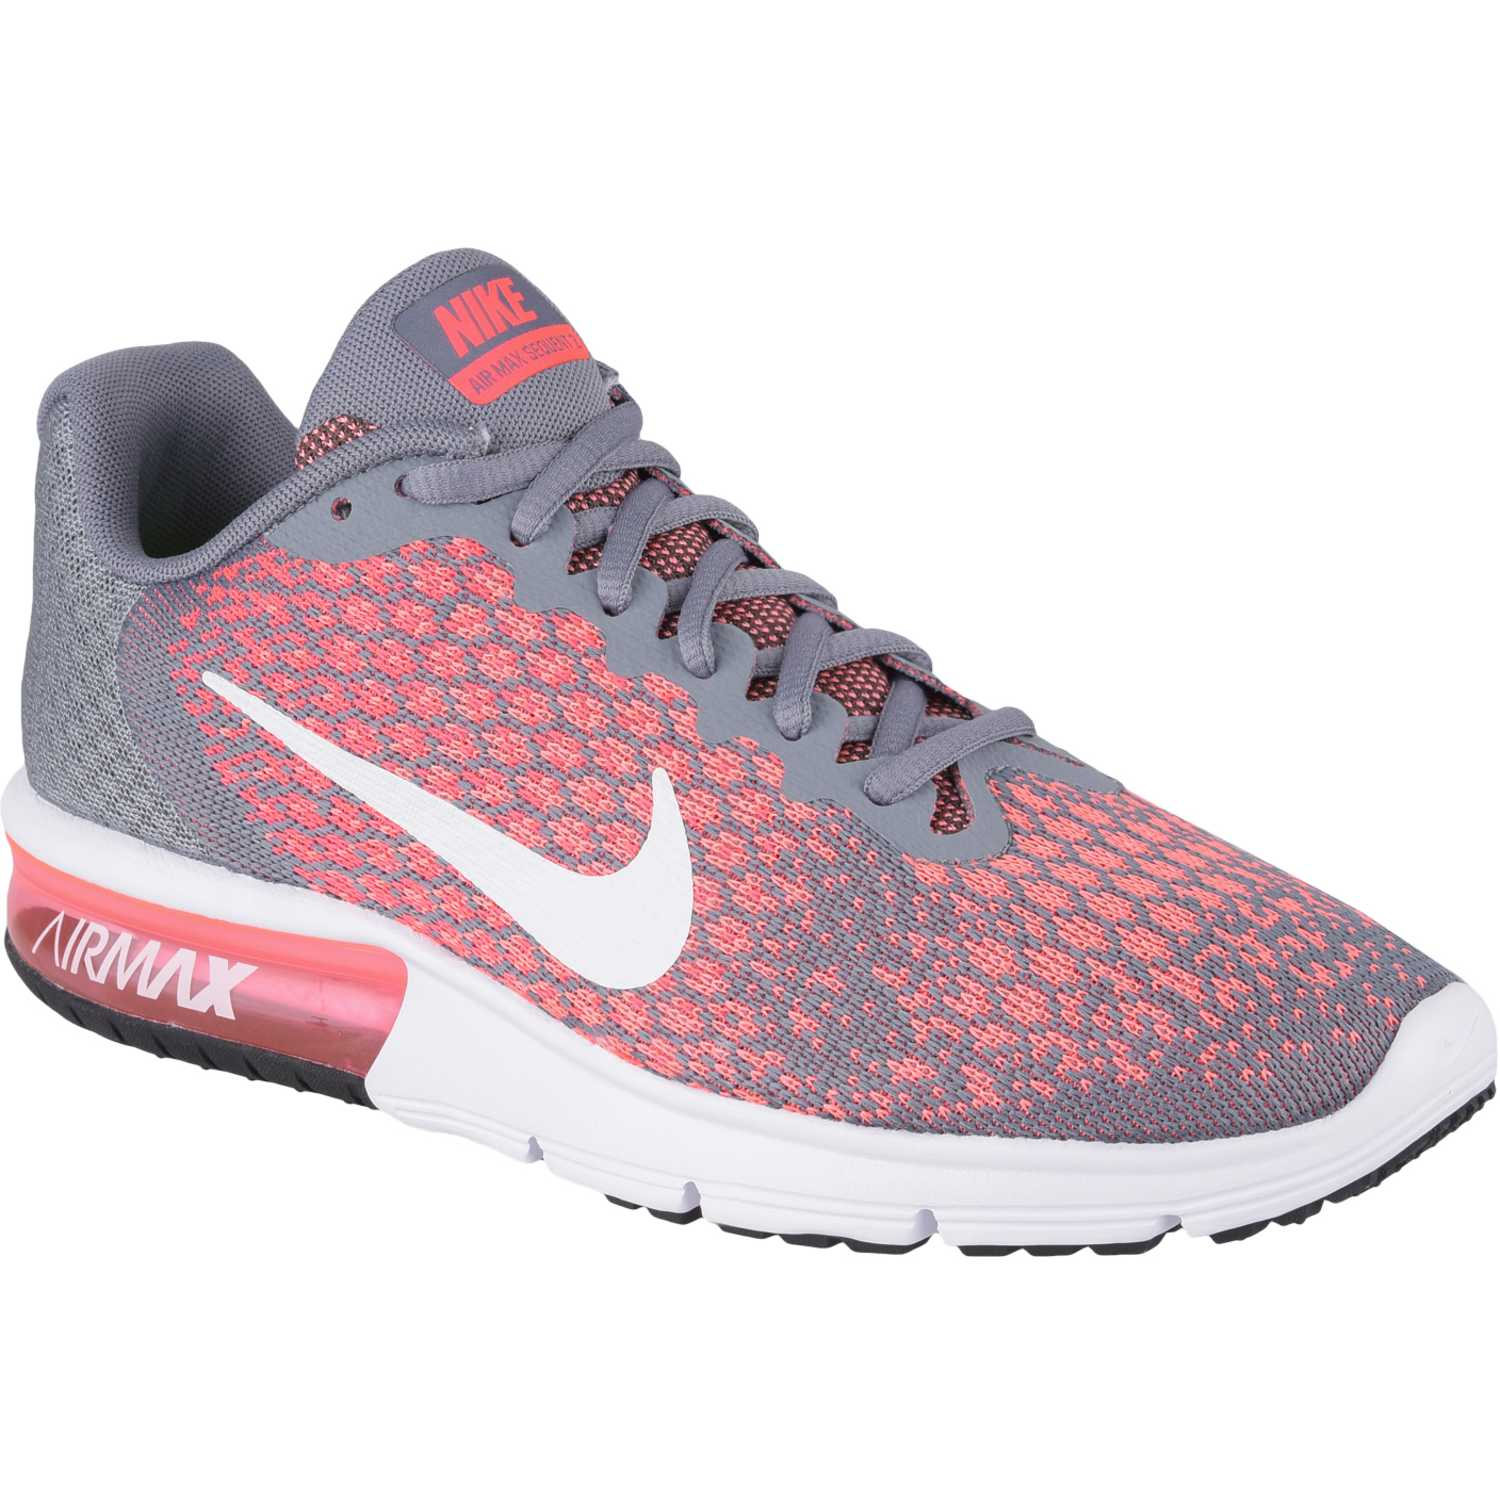 hot sale online cda11 46e12 Zapatilla de Mujer Nike Gris   rosado wmns air max sequent 2